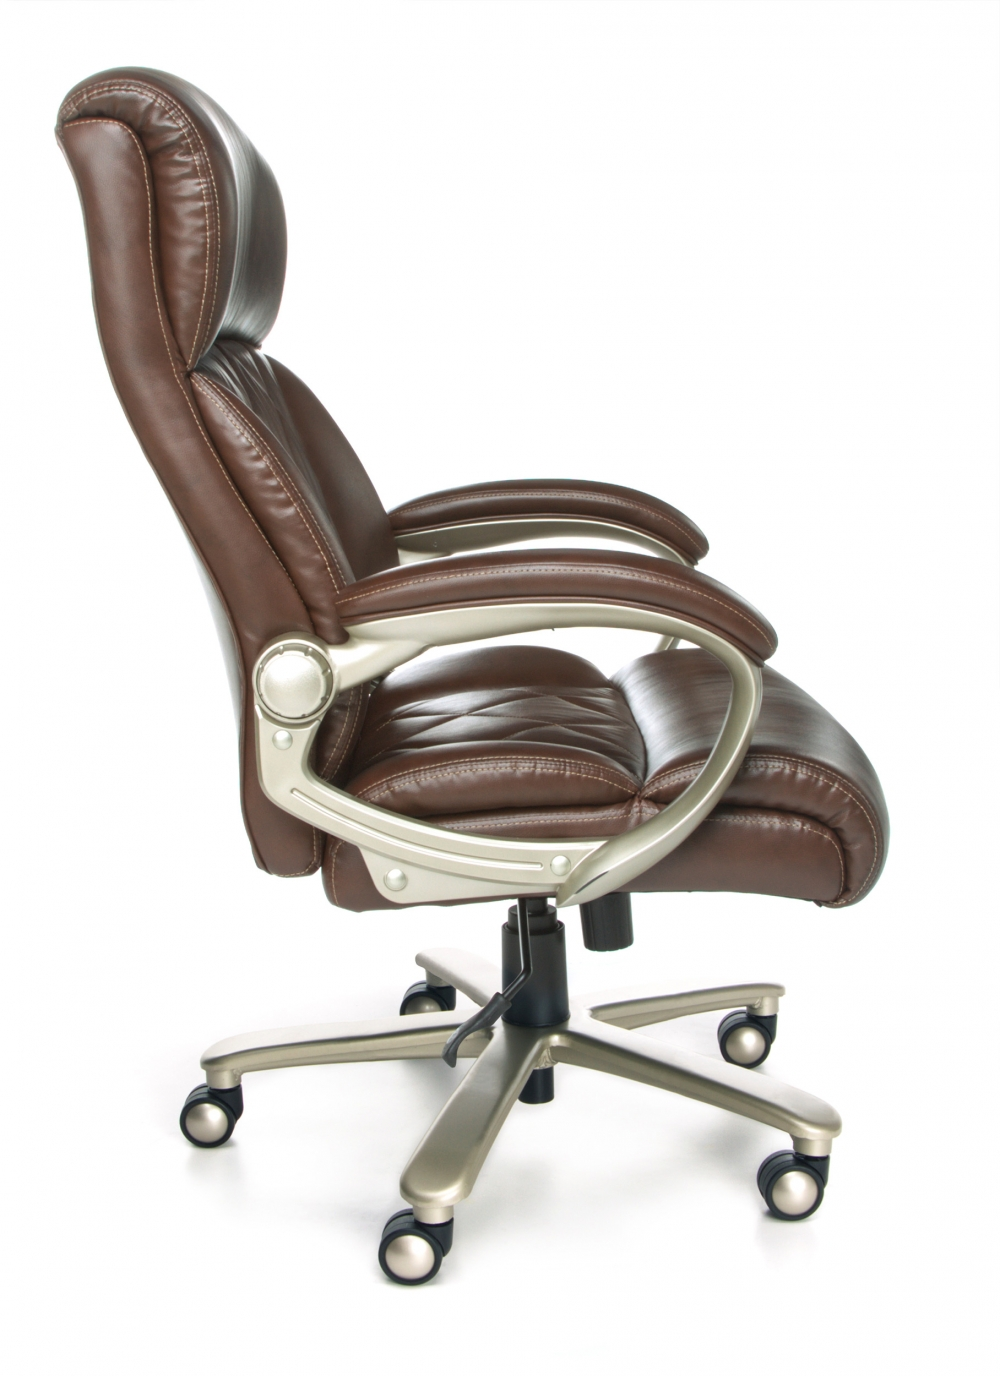 Heavy duty executive chair side view